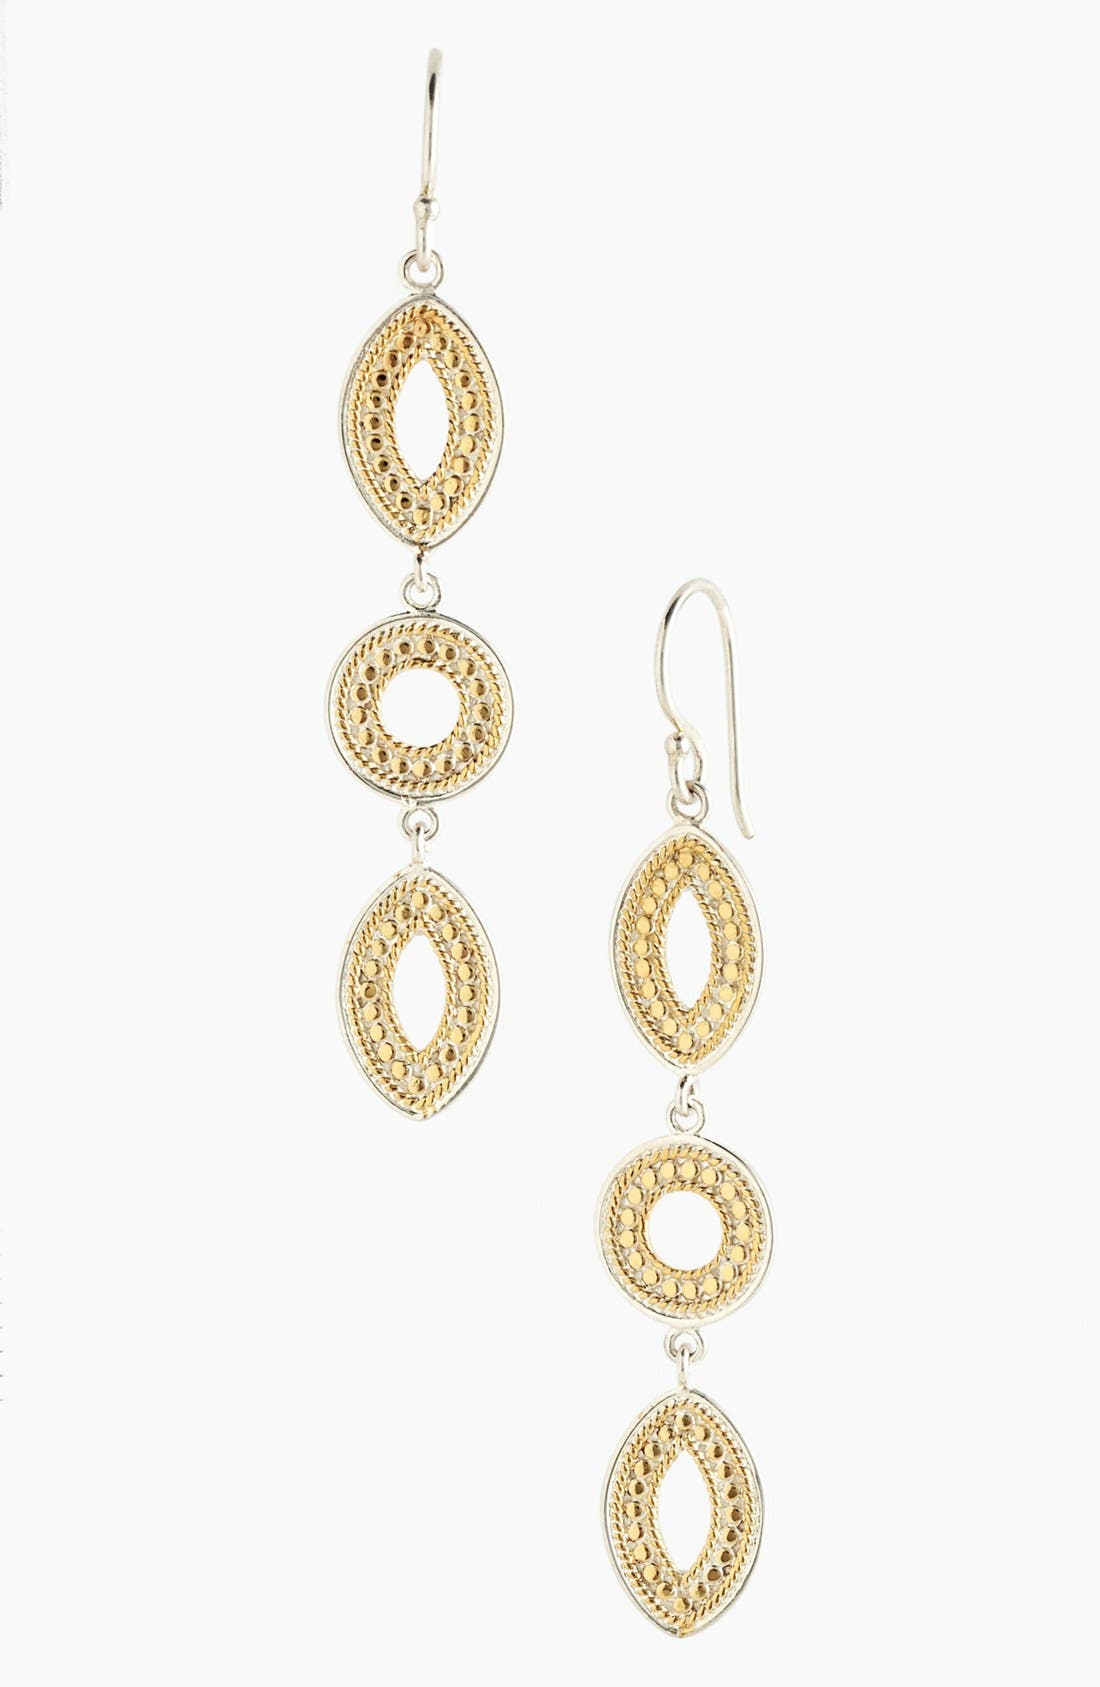 Main Image - Anna Beck 'Gili' Drop Earrings